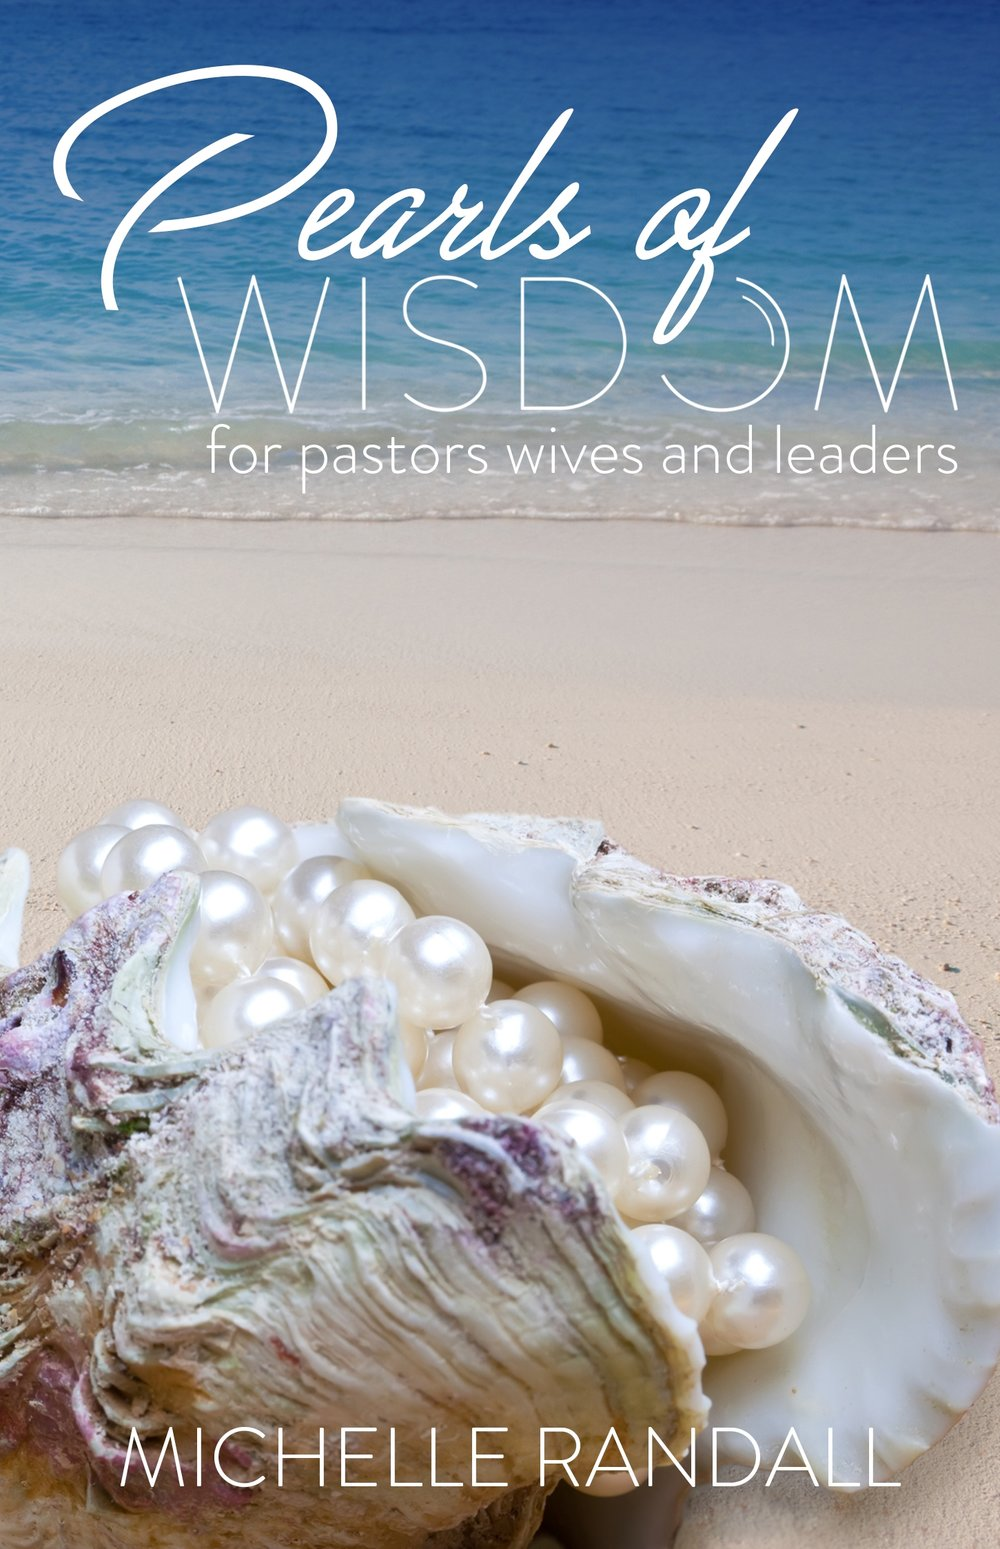 Pearls of Wisdom - Cover (Suzanne).jpg